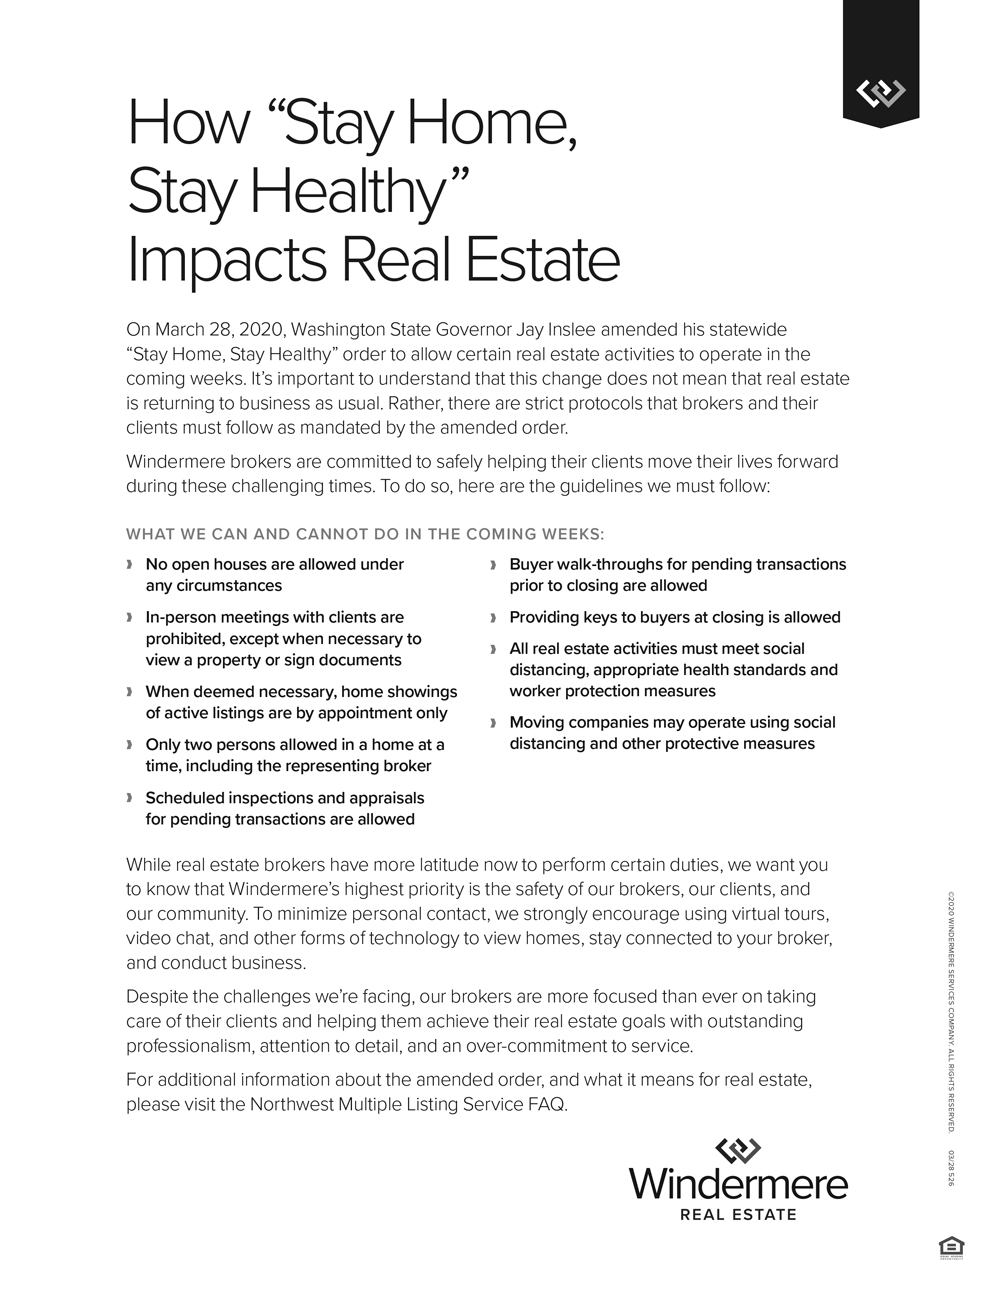 """How """"Stay Home Stay Healthy"""" Impacts Real Estate"""